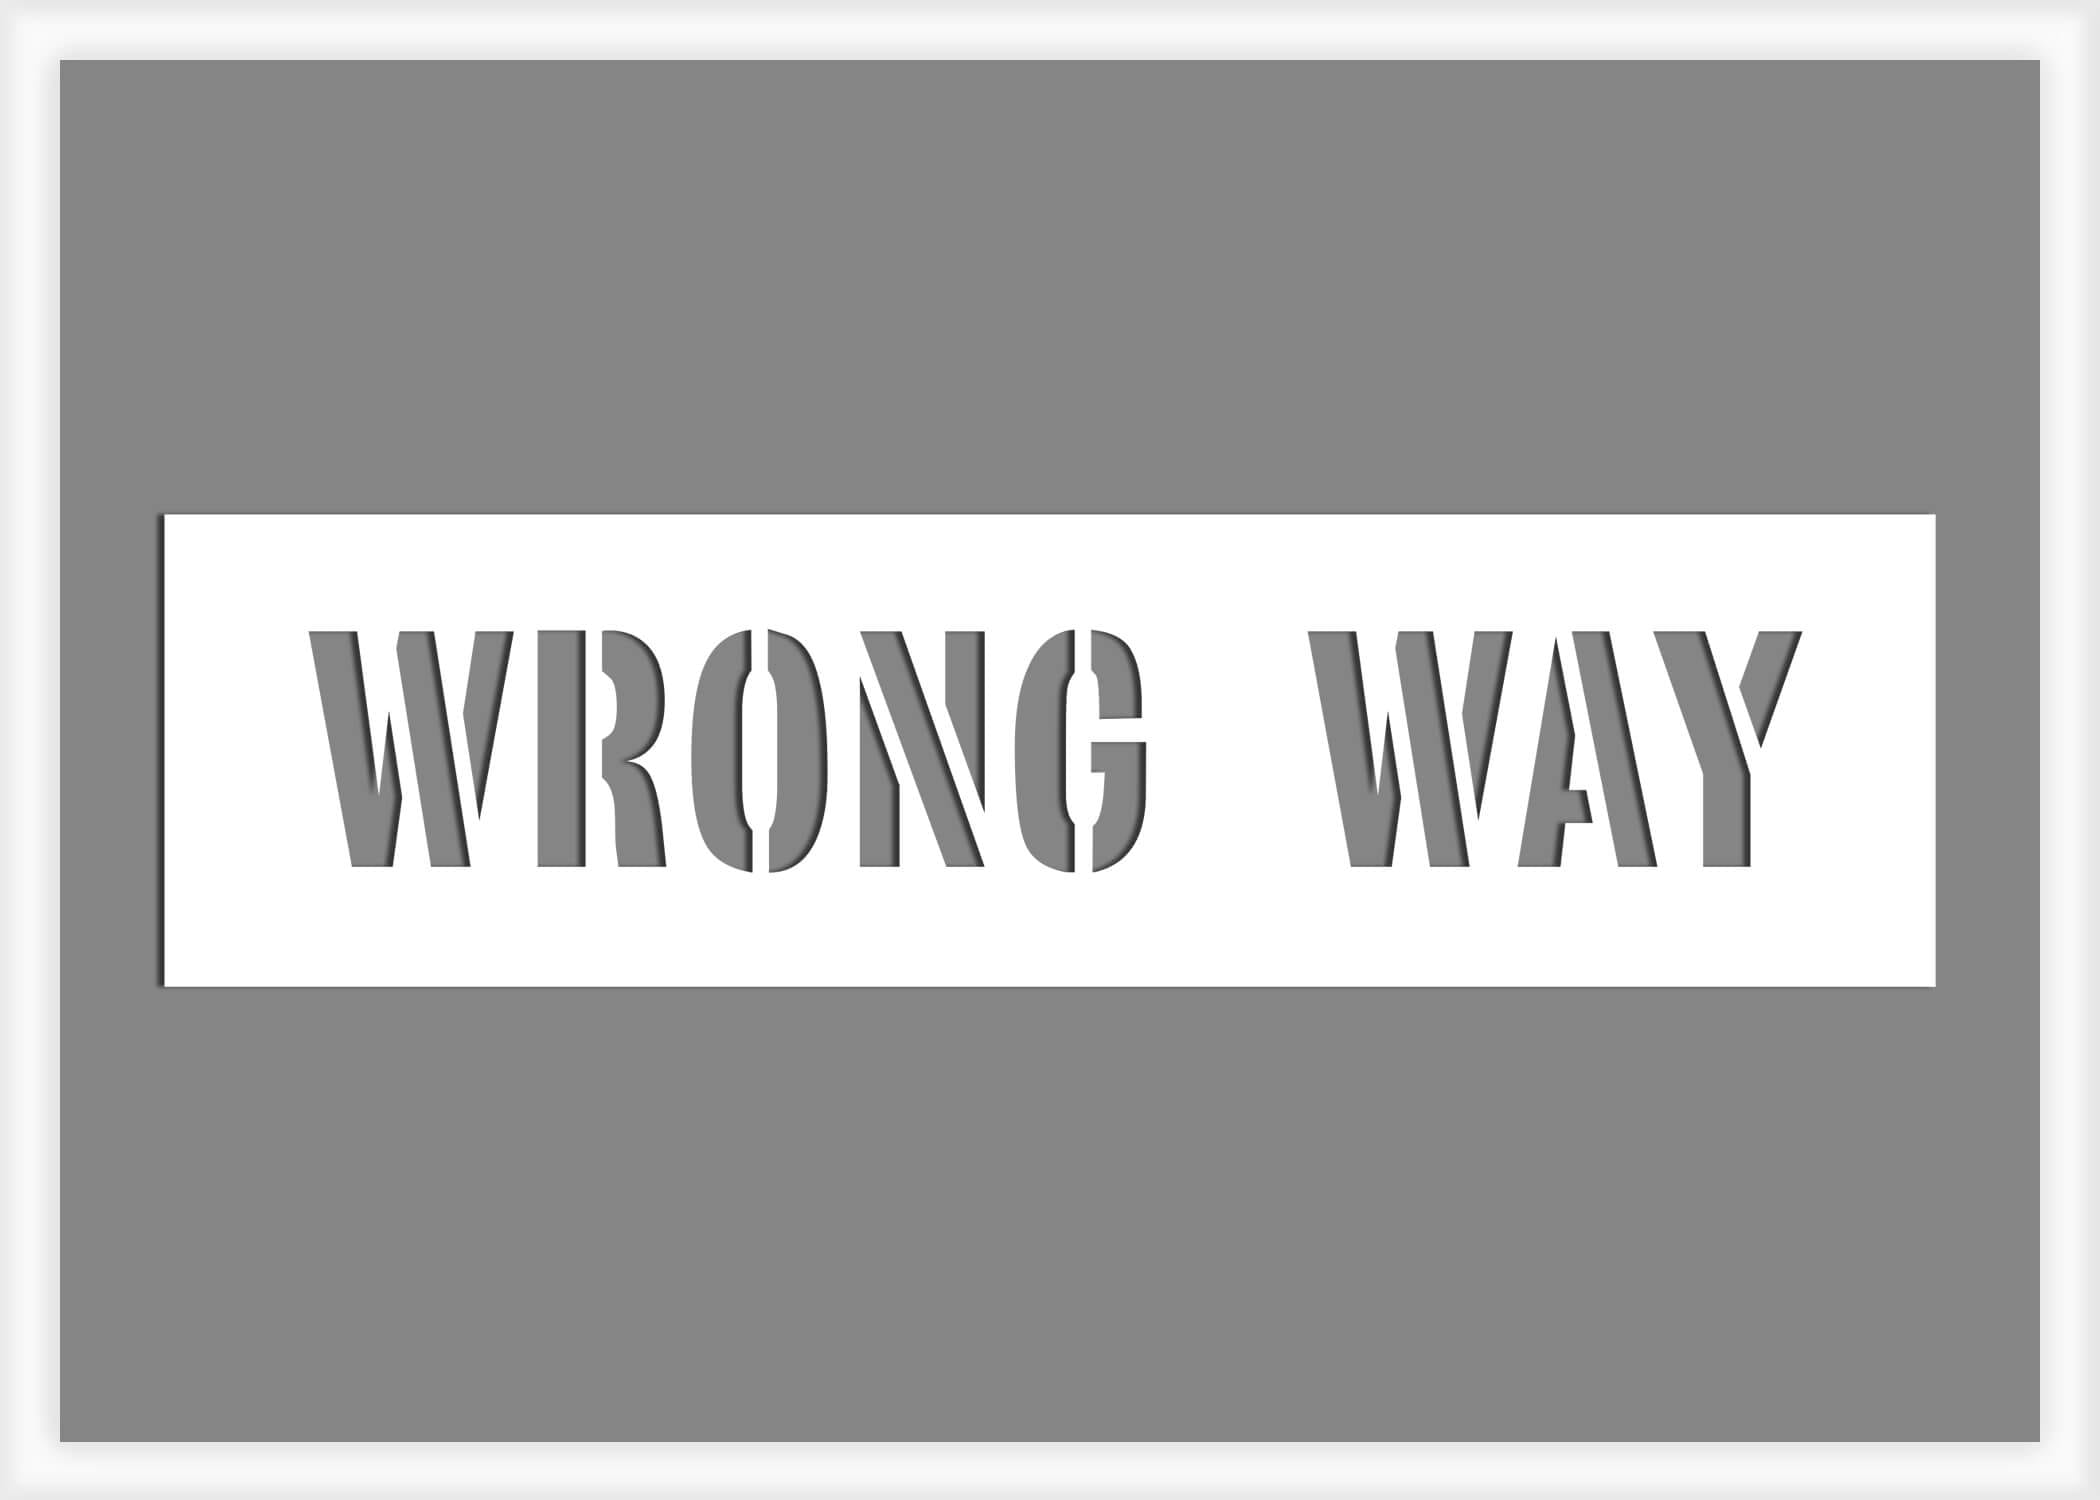 wrong-way-pavement-marking-stencil